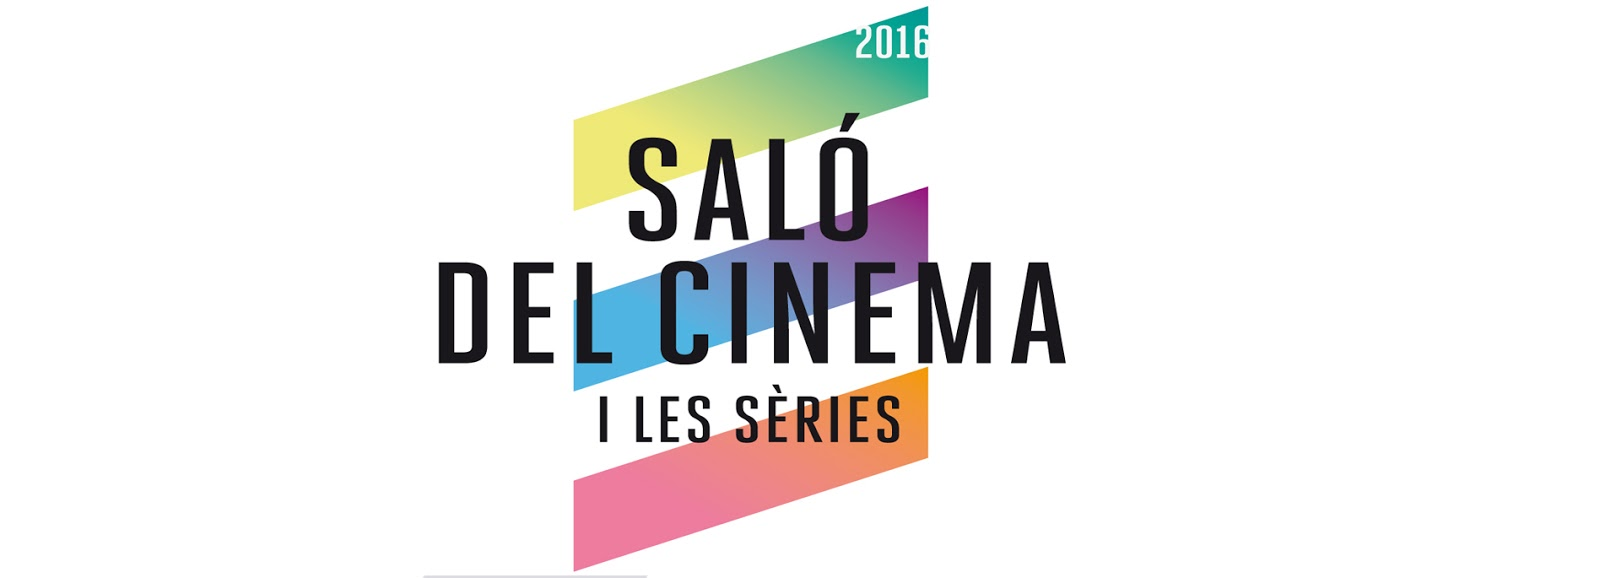 Image result for salo cinema series barcelona